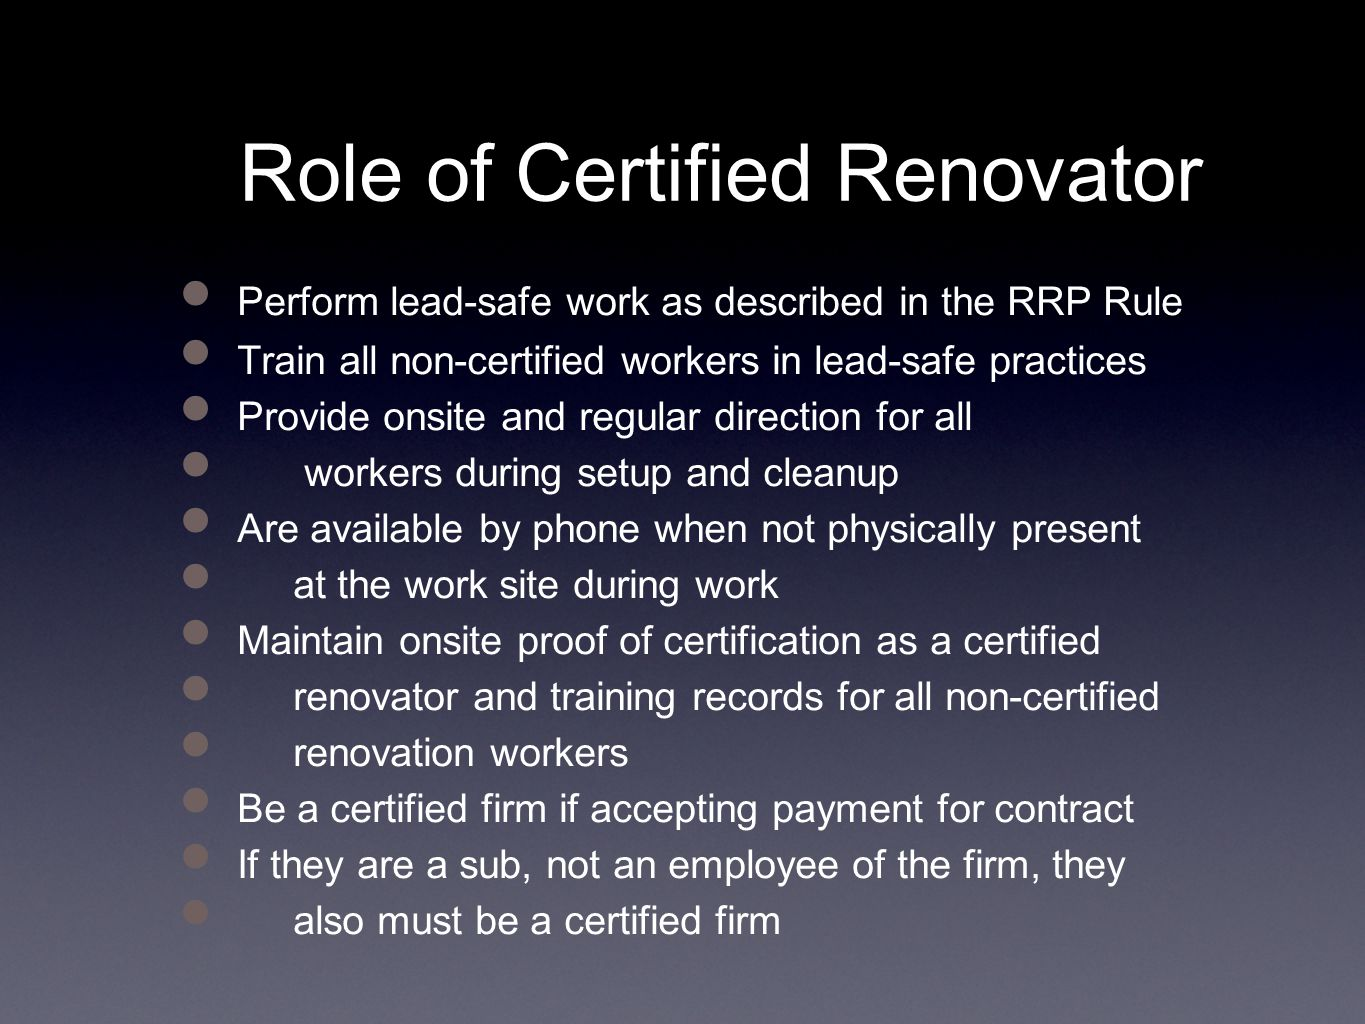 Role of Certified Renovator Perform lead-safe work as described in the RRP Rule Train all non-certified workers in lead-safe practices Provide onsite